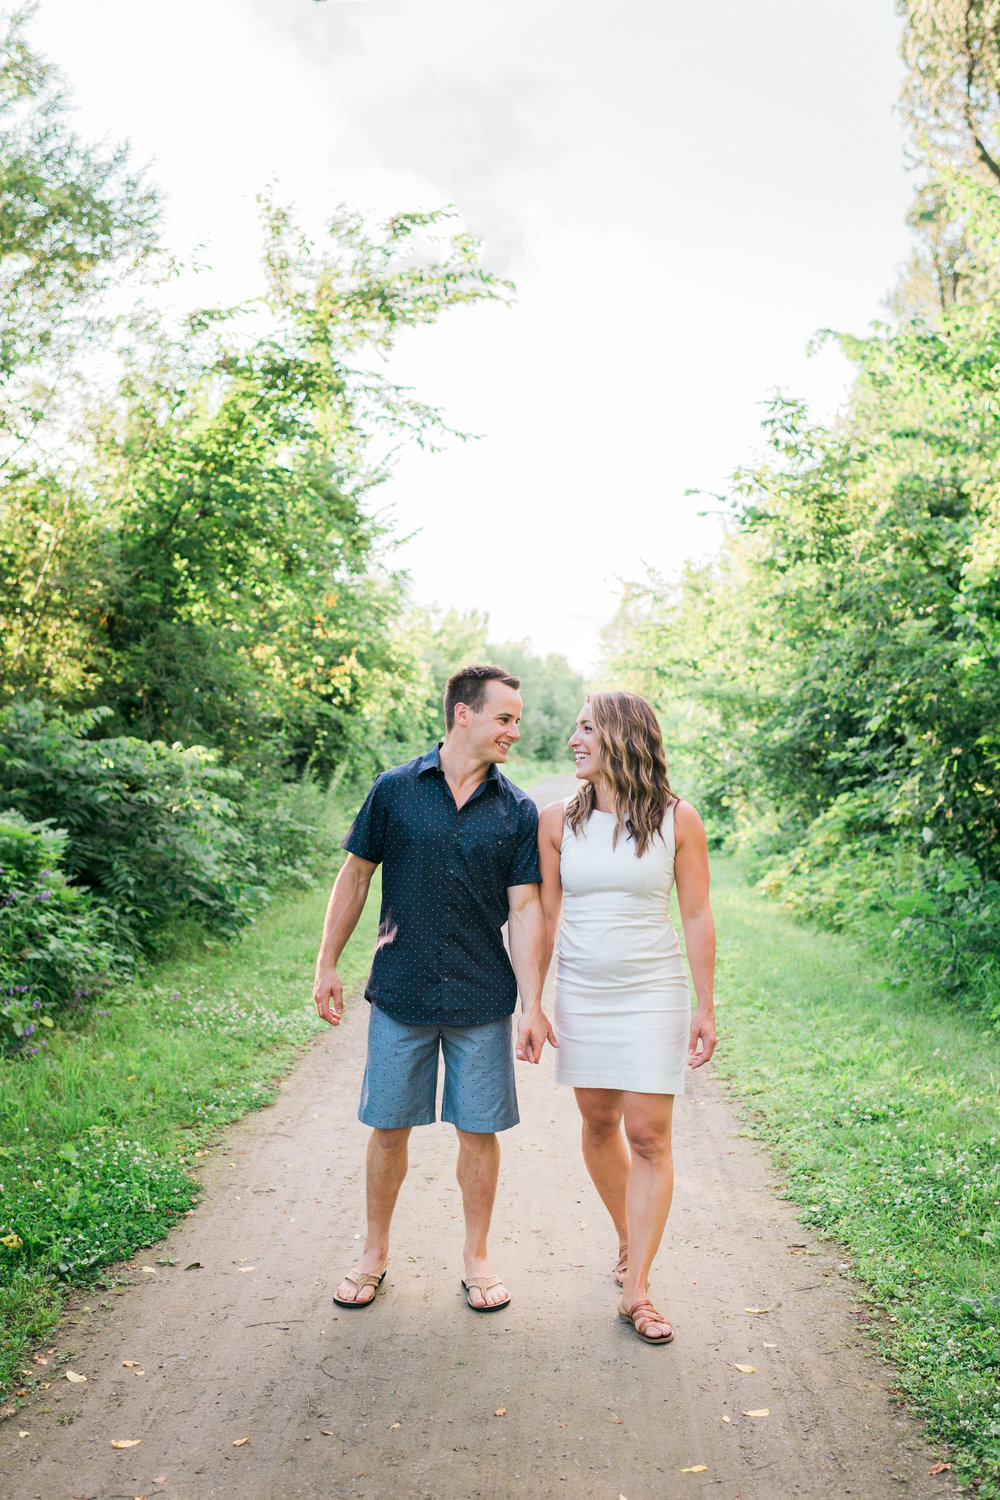 Engaged couple holds hands and looks into each other's eyes as they walk down a gravel road.